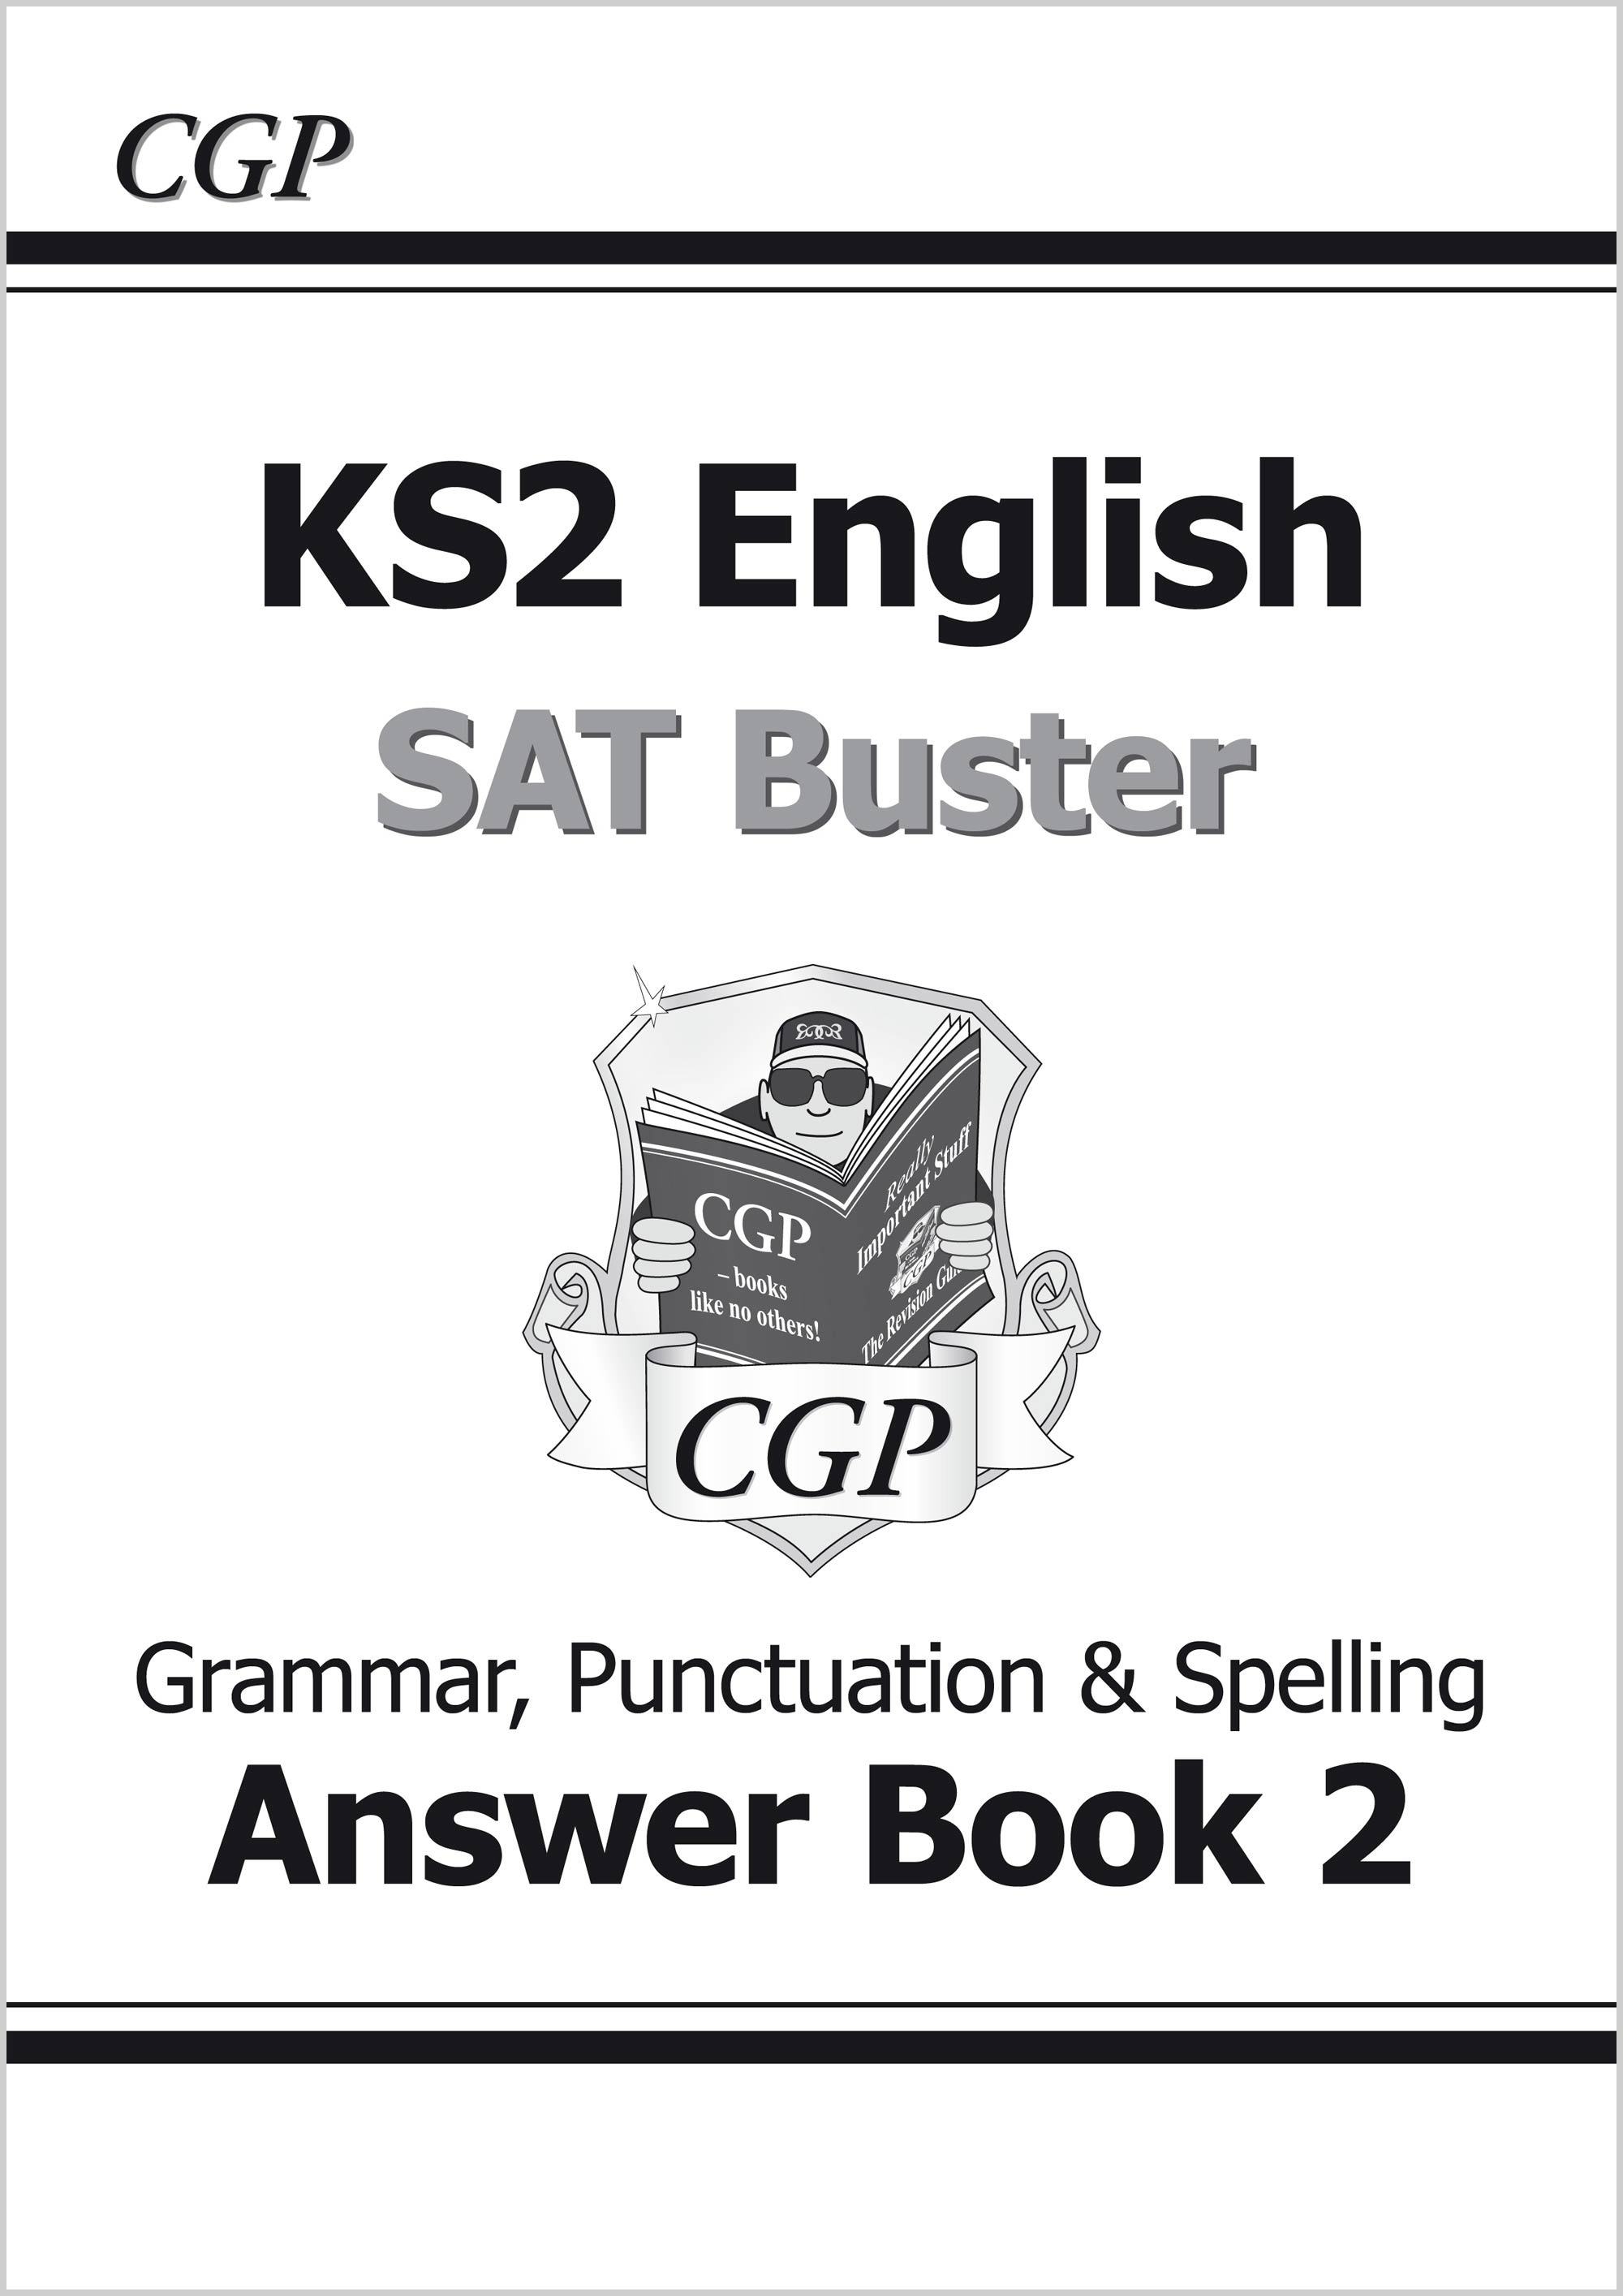 KS2 English SAT Buster Book 2 Answers - Grammar, Punctuation & Spelling  (for the 2020 tests)